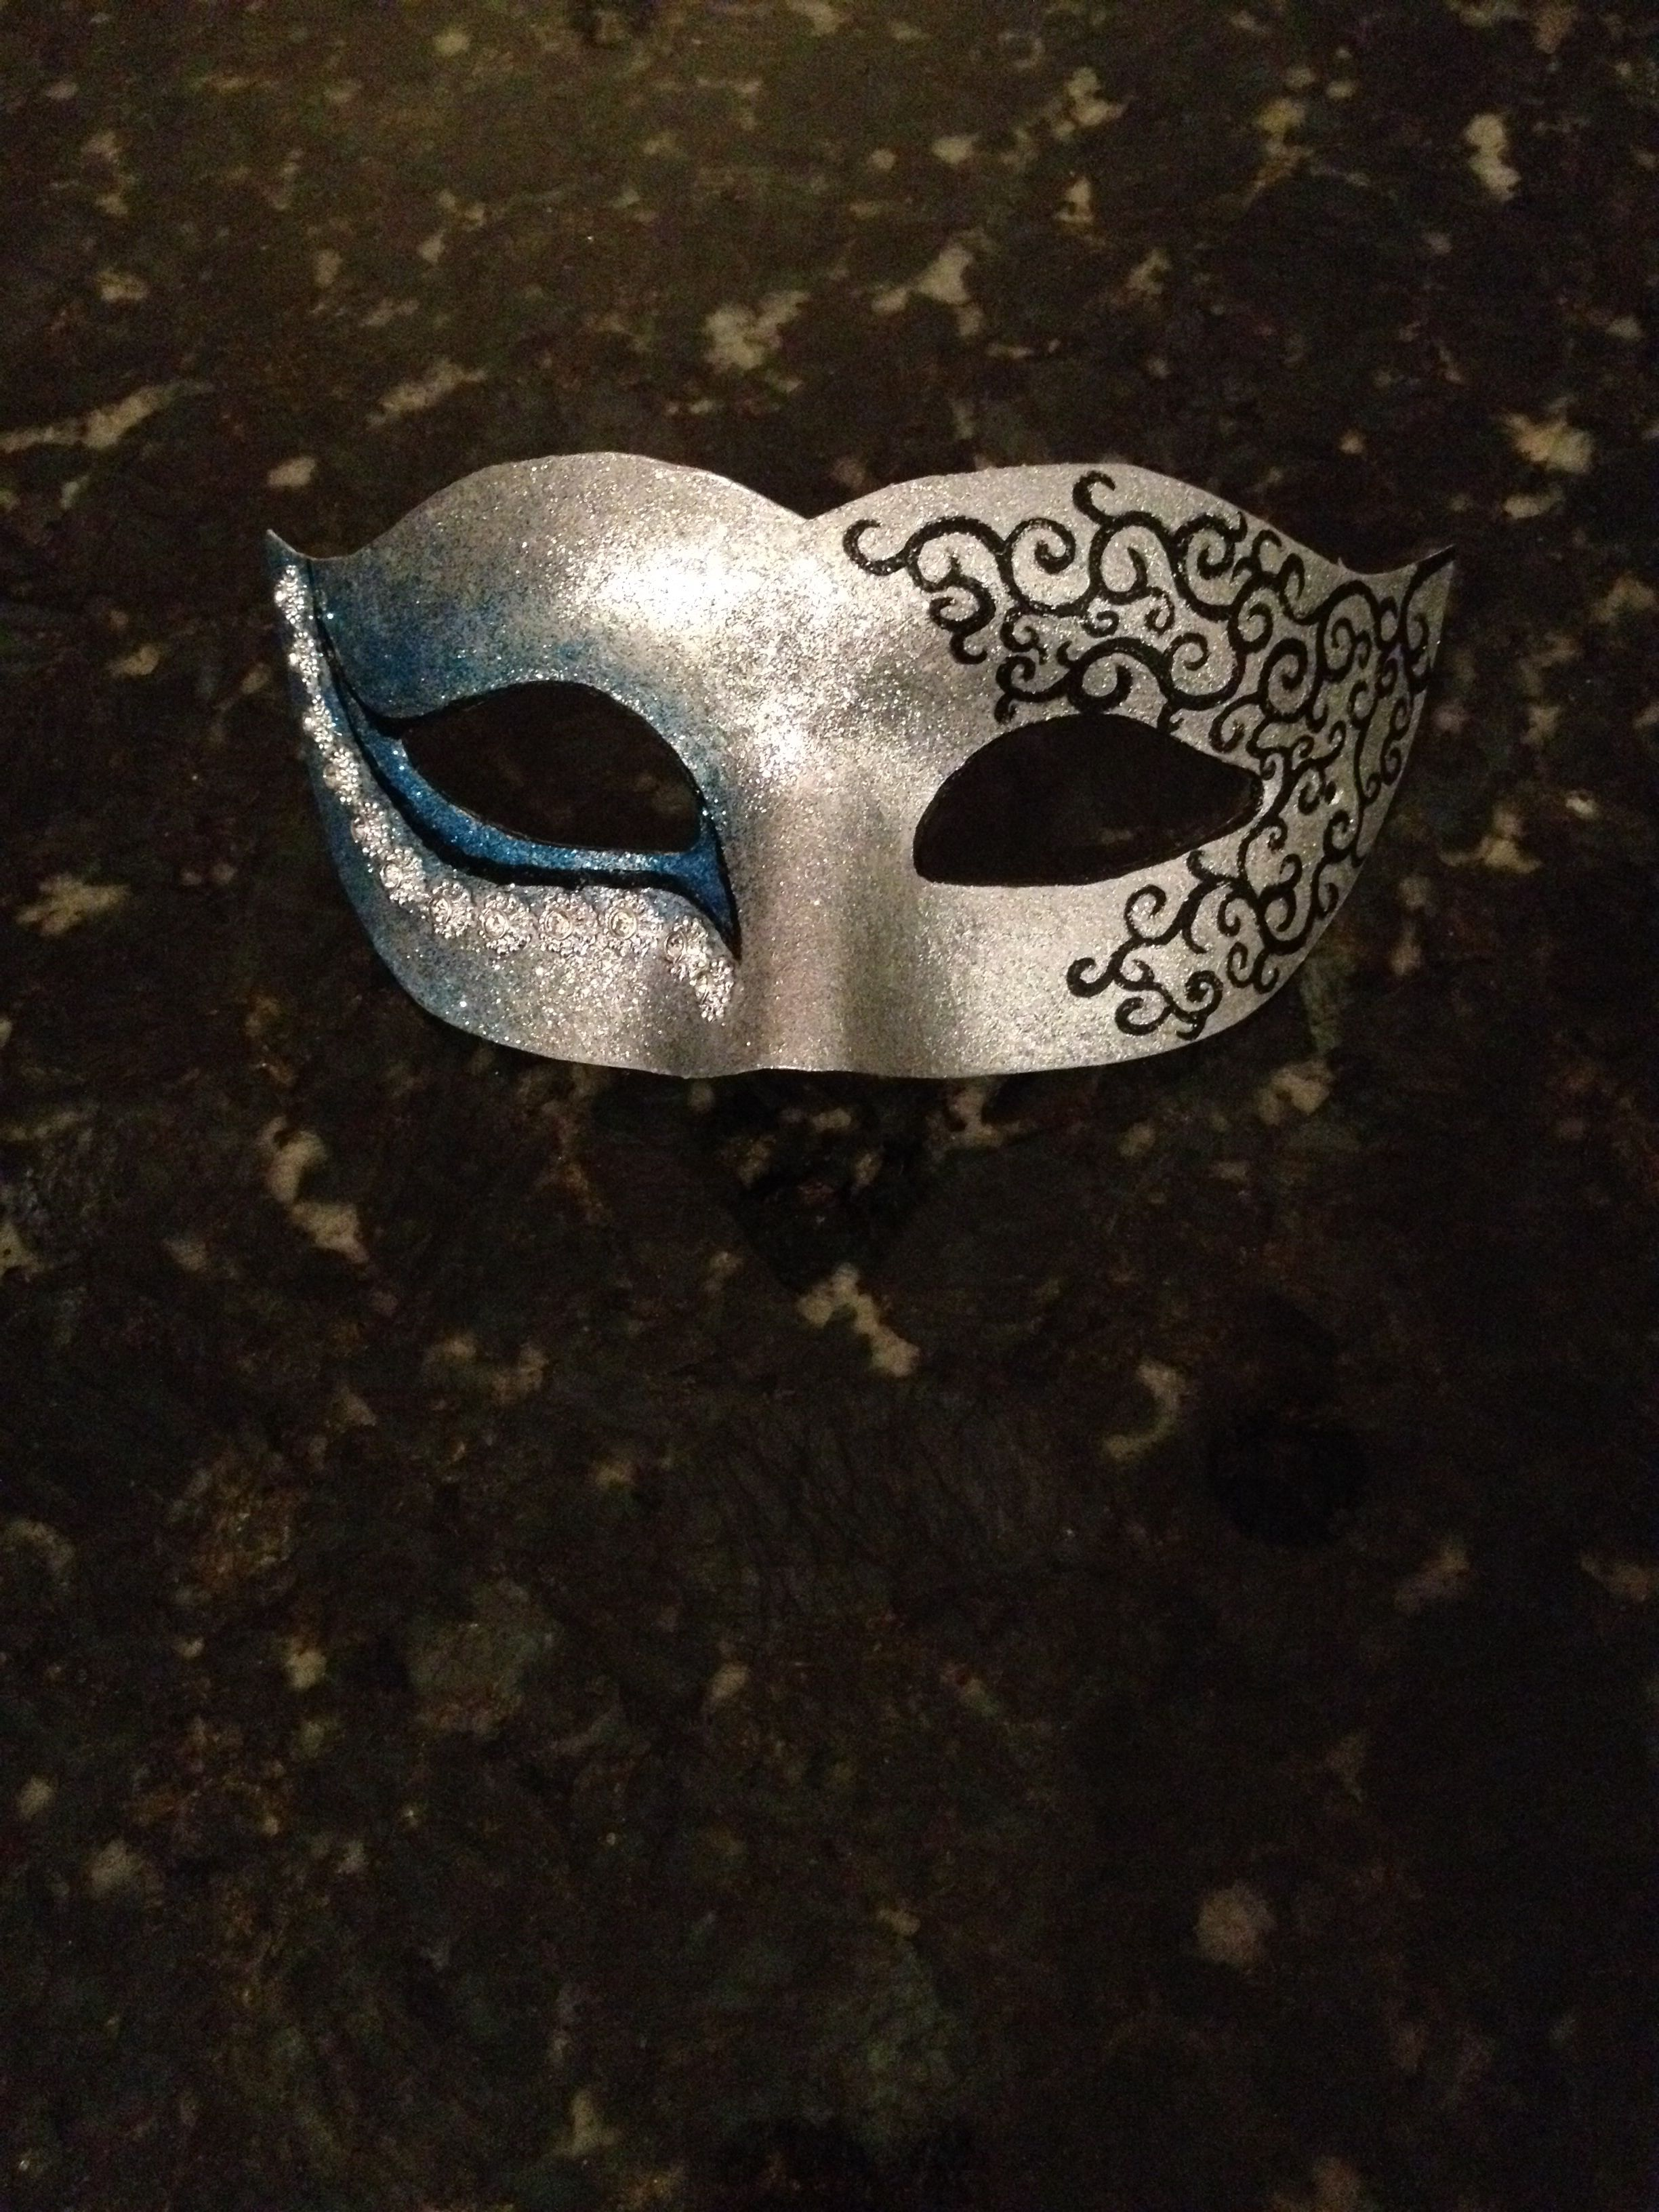 Pin By Ashley Collins On Adhs Masquerade Ball Ideas Masks Masquerade Masquerade Mask Diy Masquerade Mask